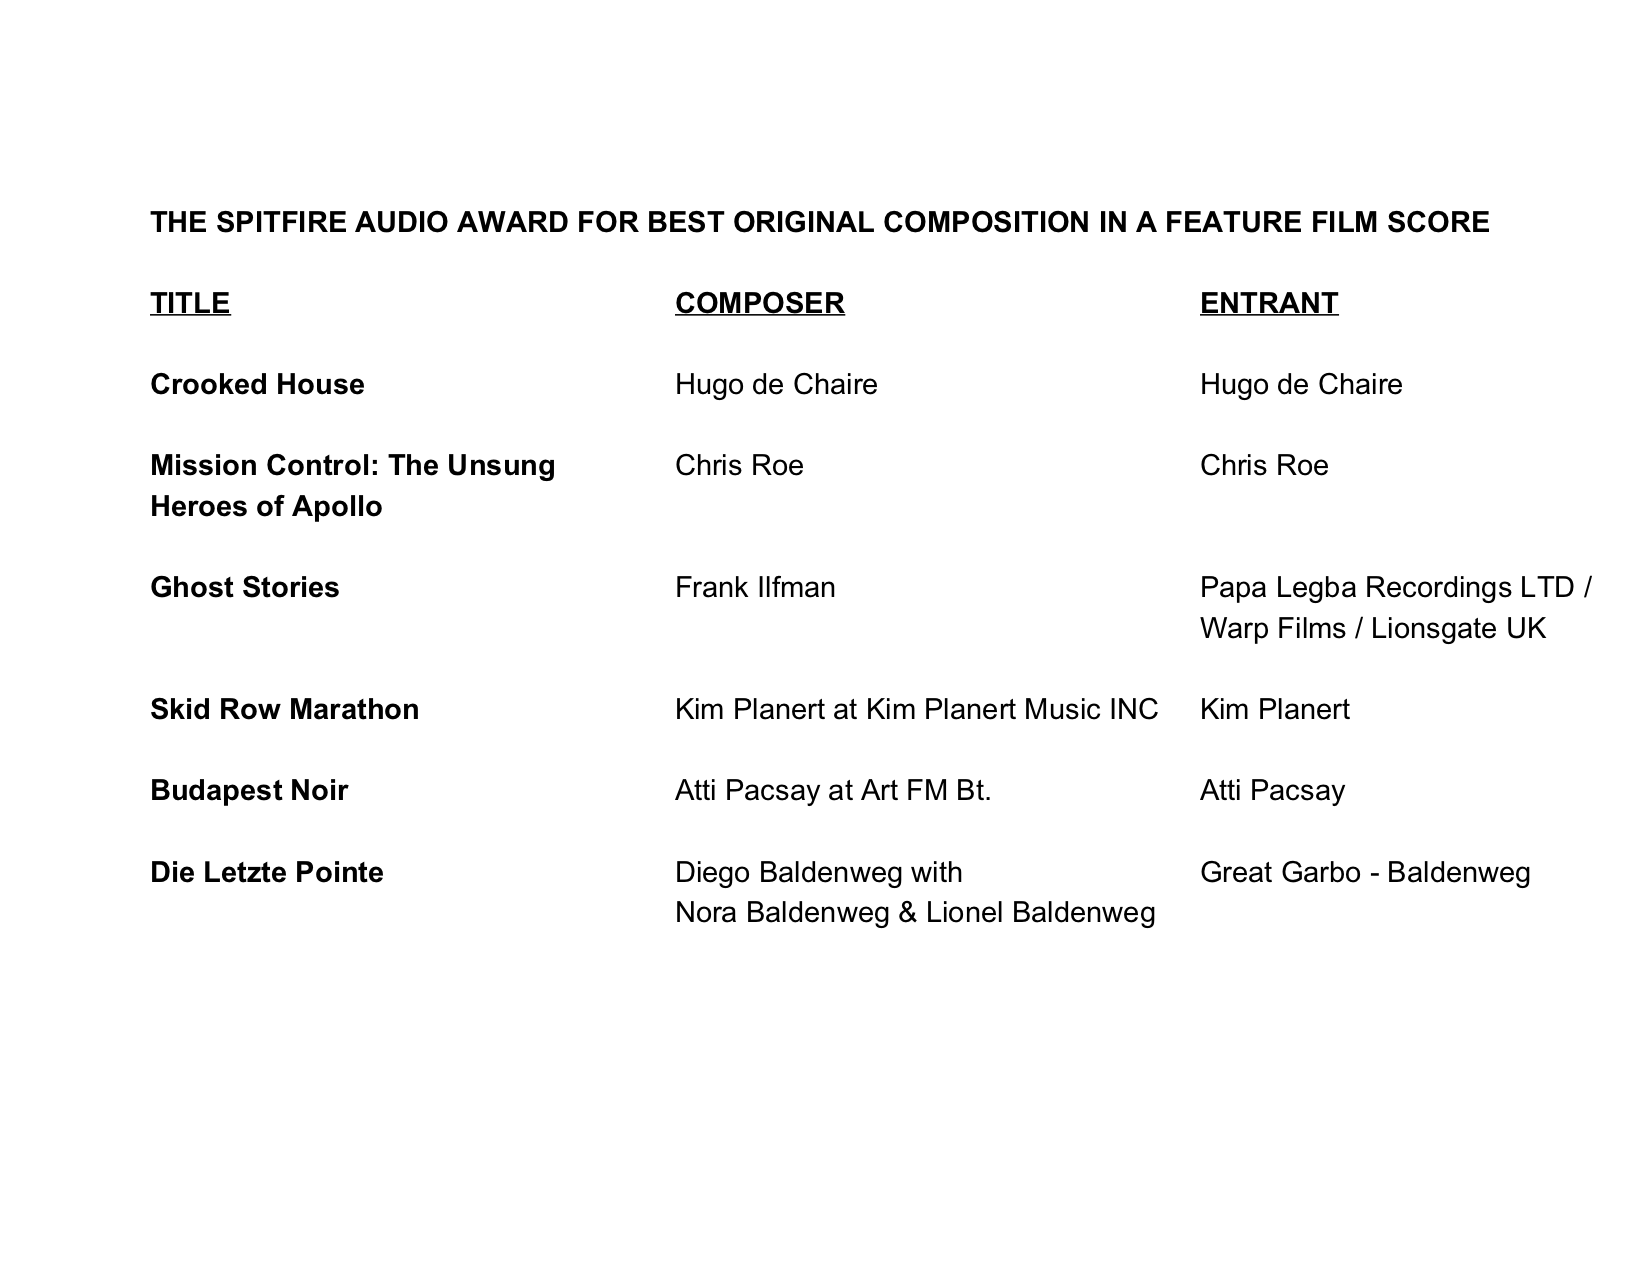 THE SPITFIRE AUDIO AWARD FOR BEST ORIGINAL COMPOSITION IN A FEATURE FILM SCORE-2.png